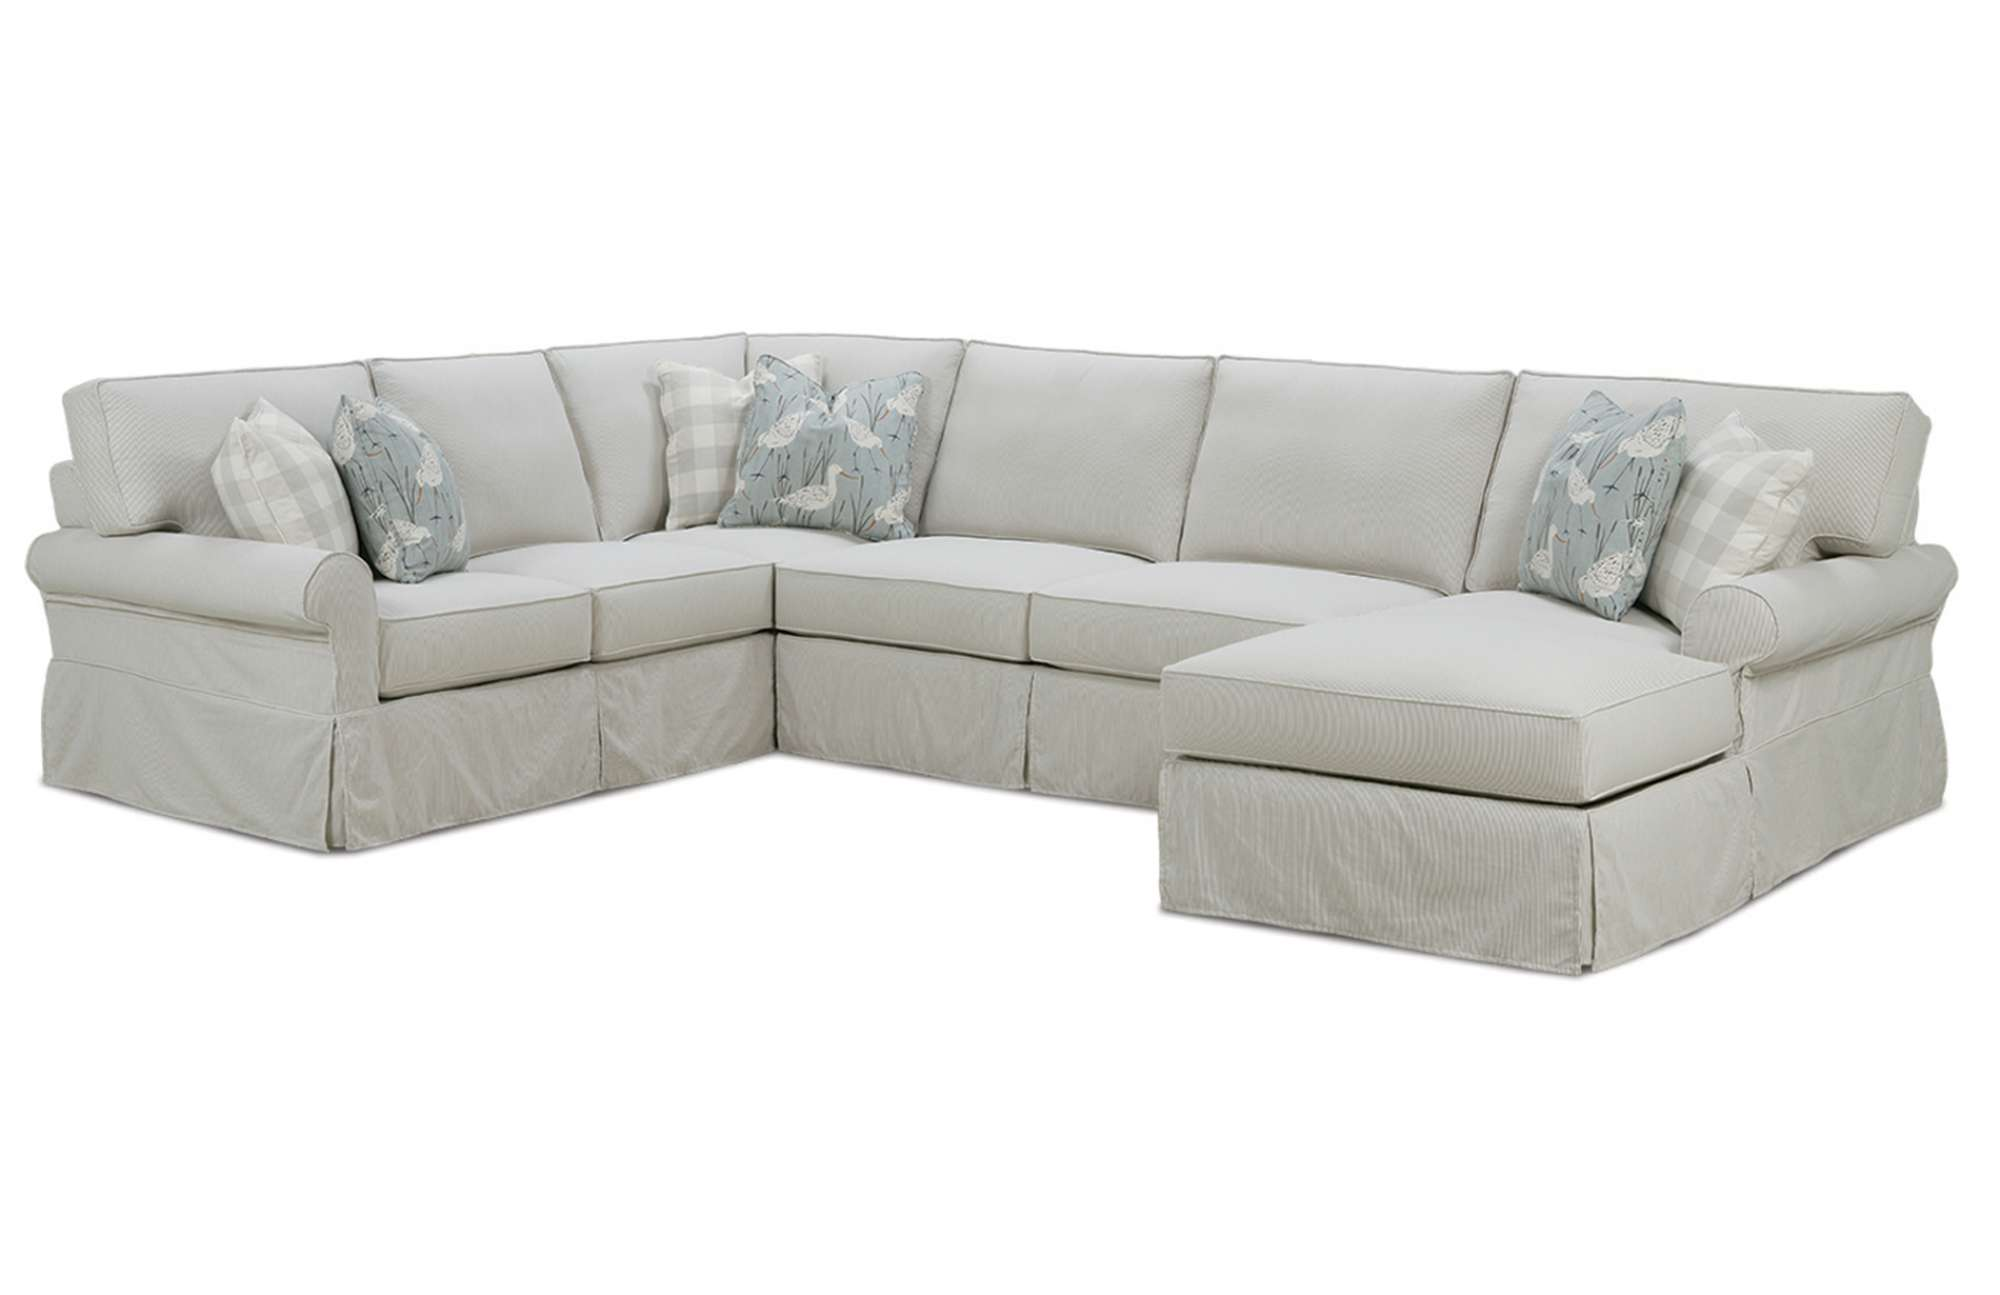 Inspirational Slipcover Sectional Sofa 71 For Sofa Design Ideas with Slipcover Sectional Sofa